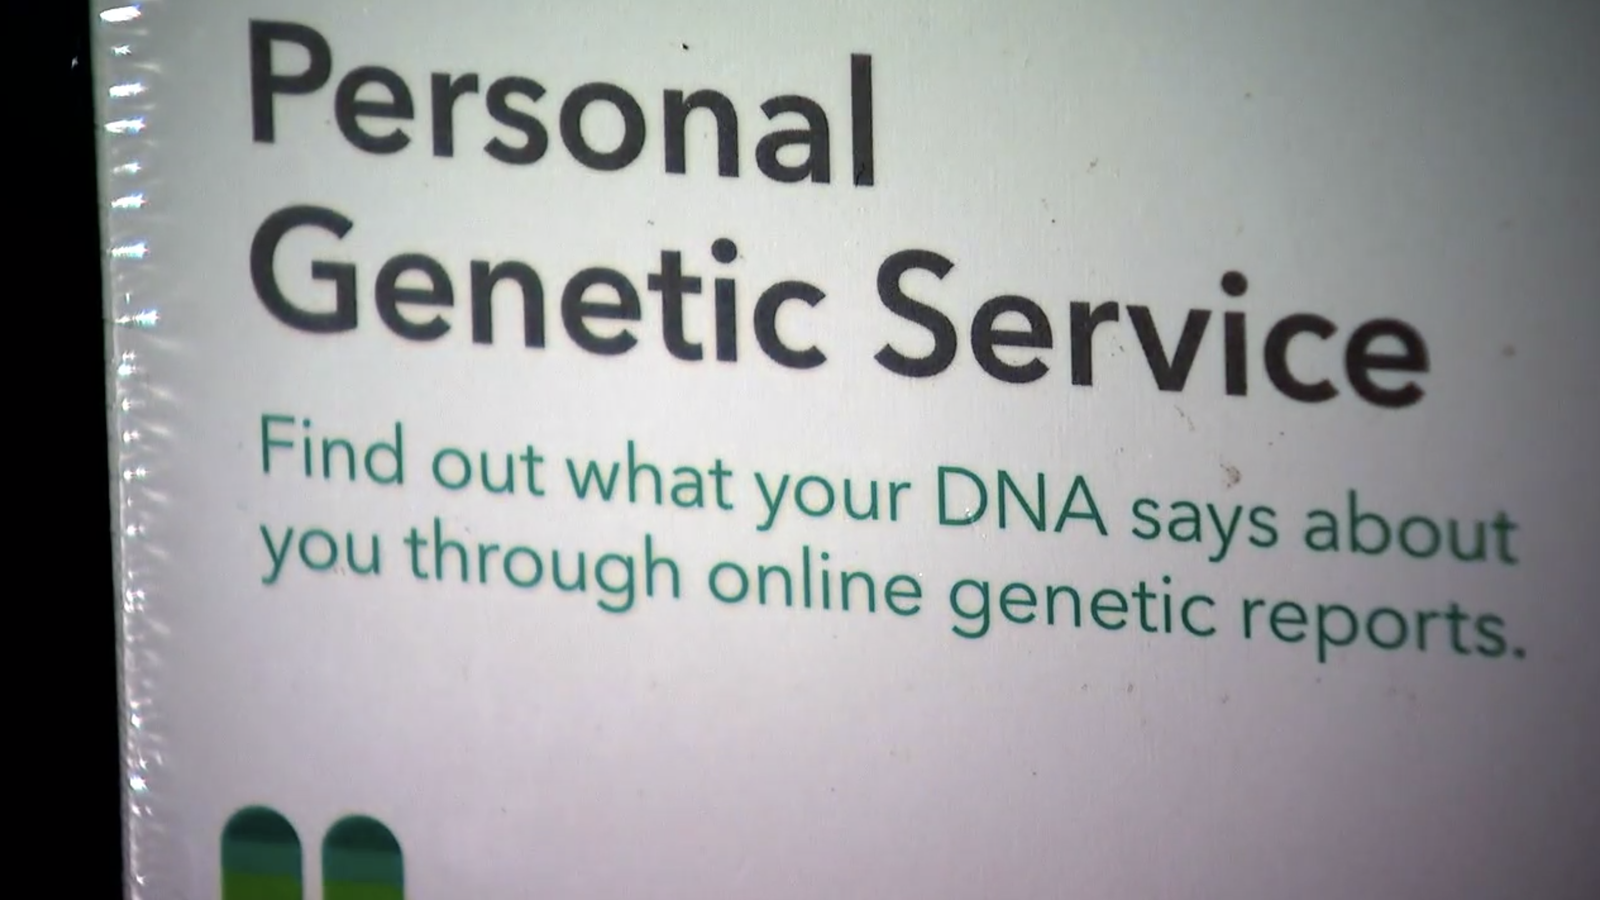 Spotlight on America Genetic Genealogy courtesy Sinclair Broadcast Group